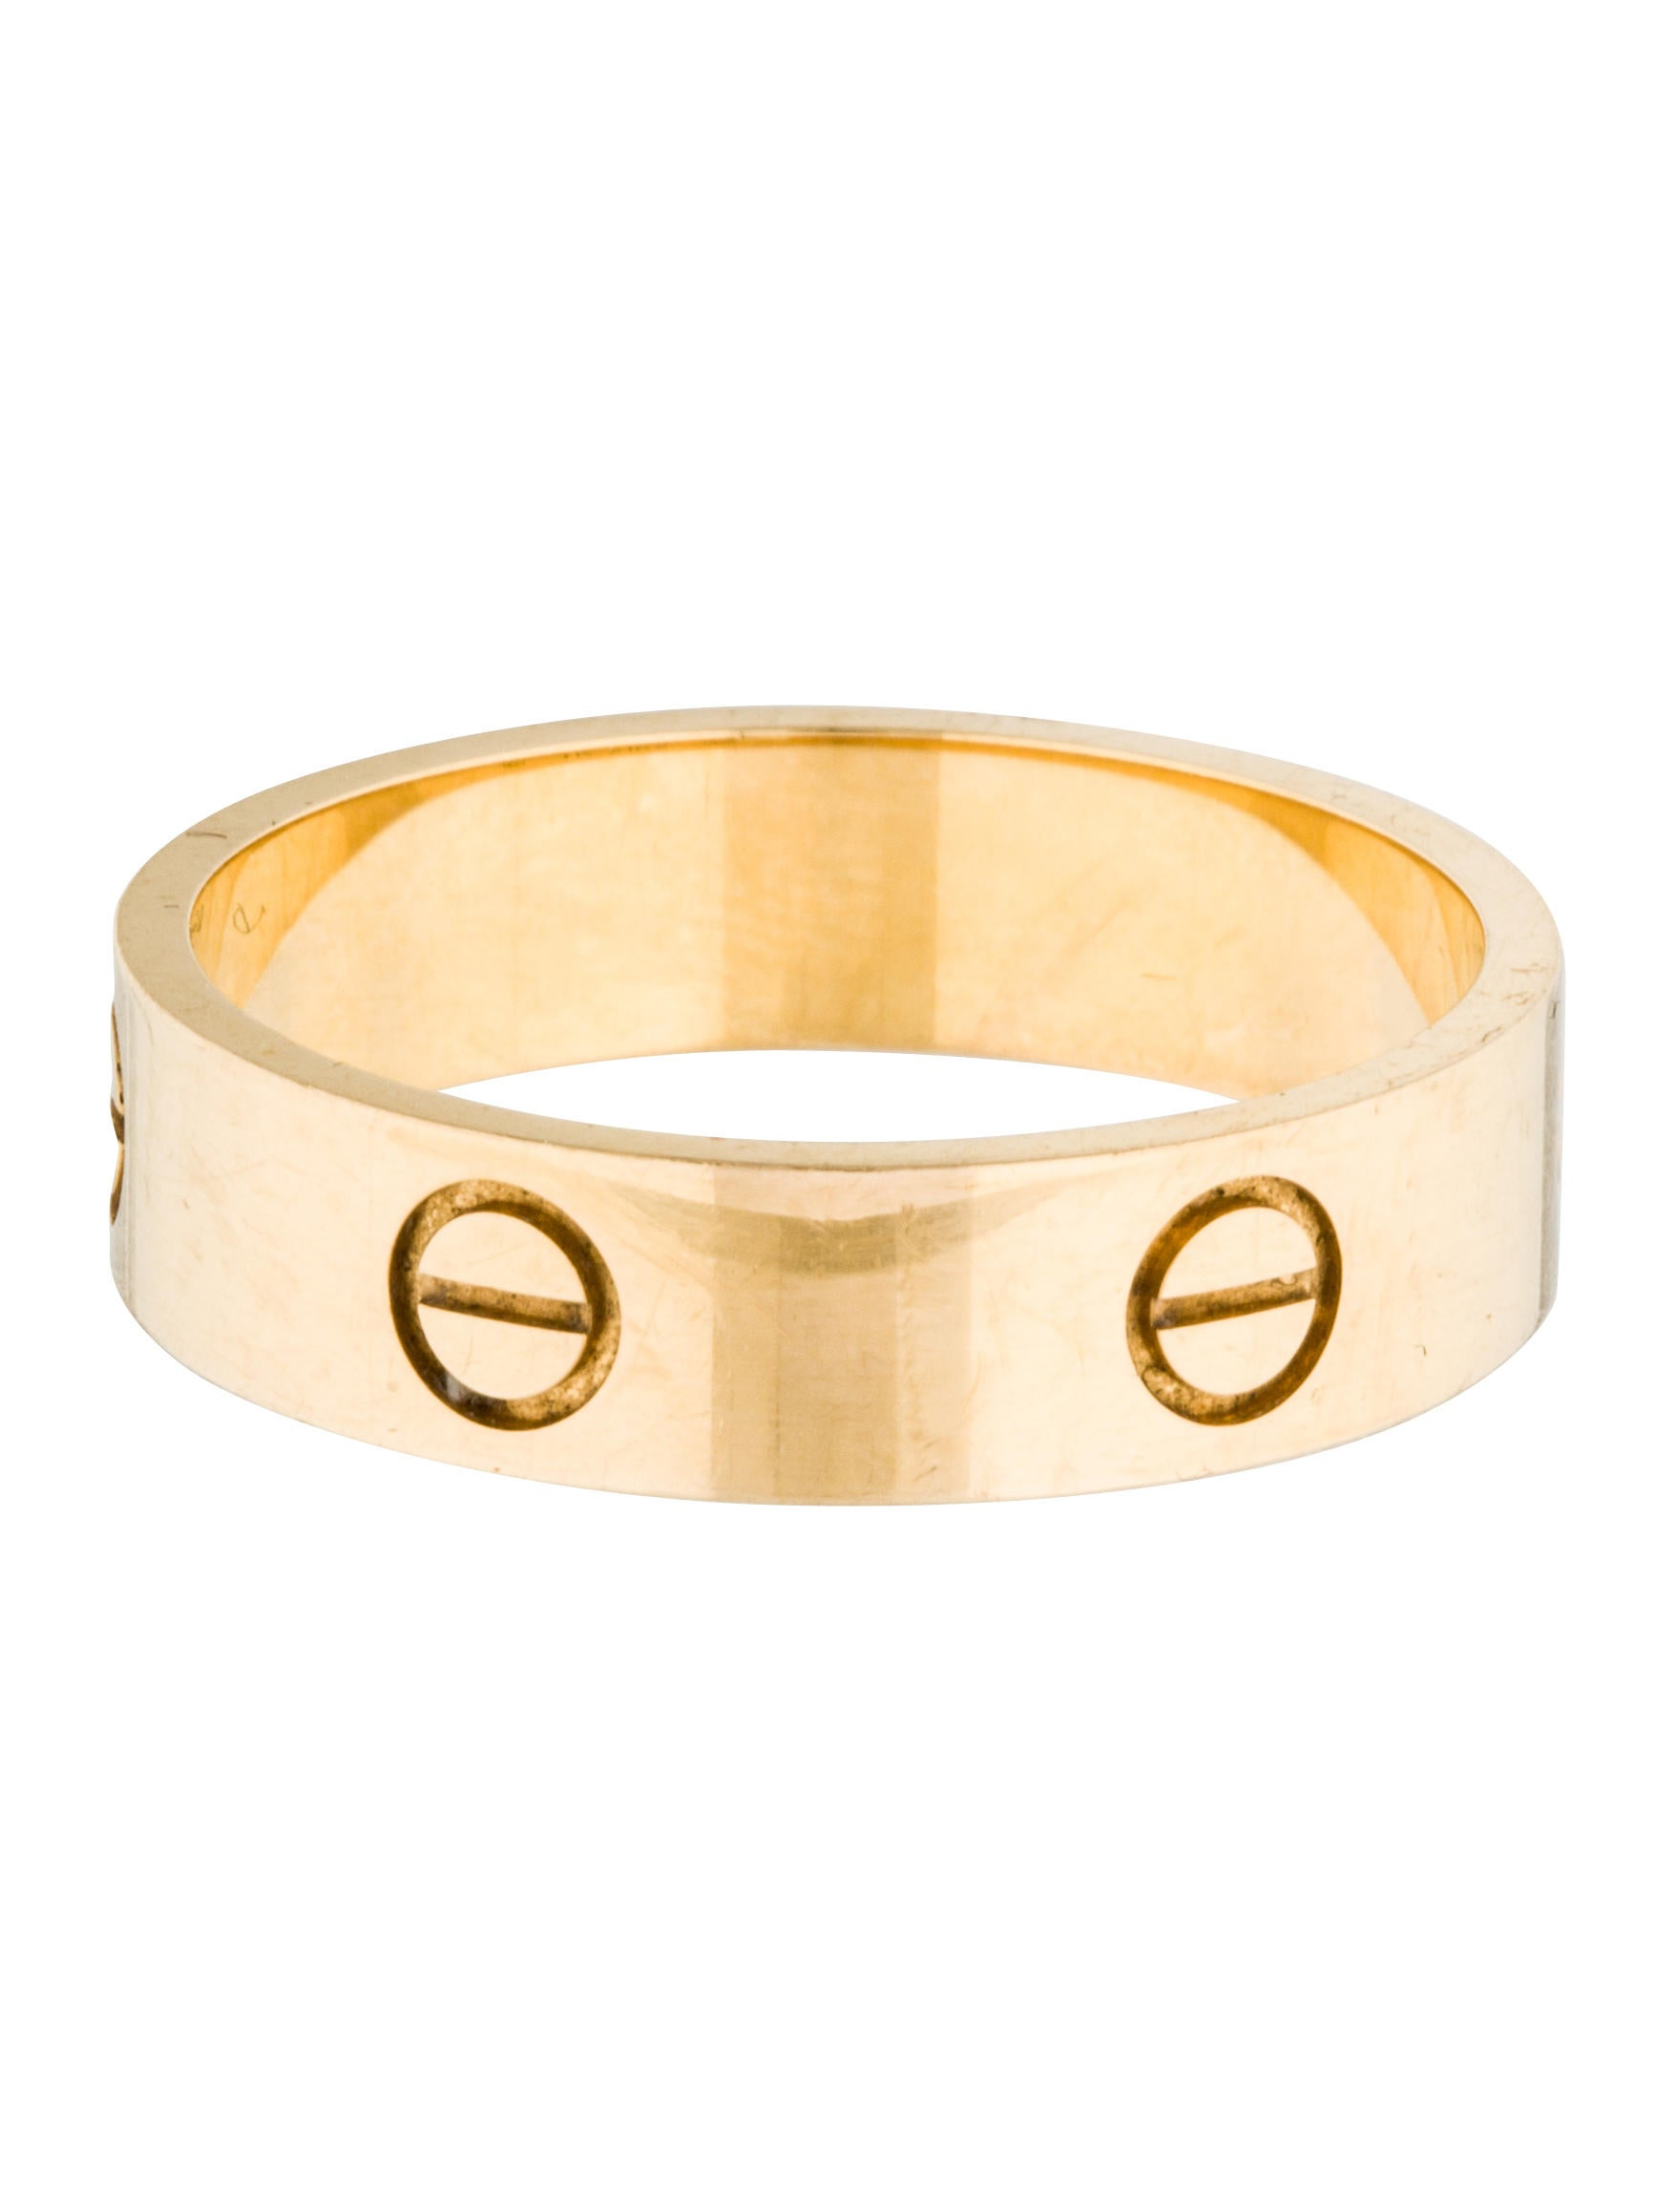 Cartier LOVE Ring - Rings - CRT30977   The RealReal